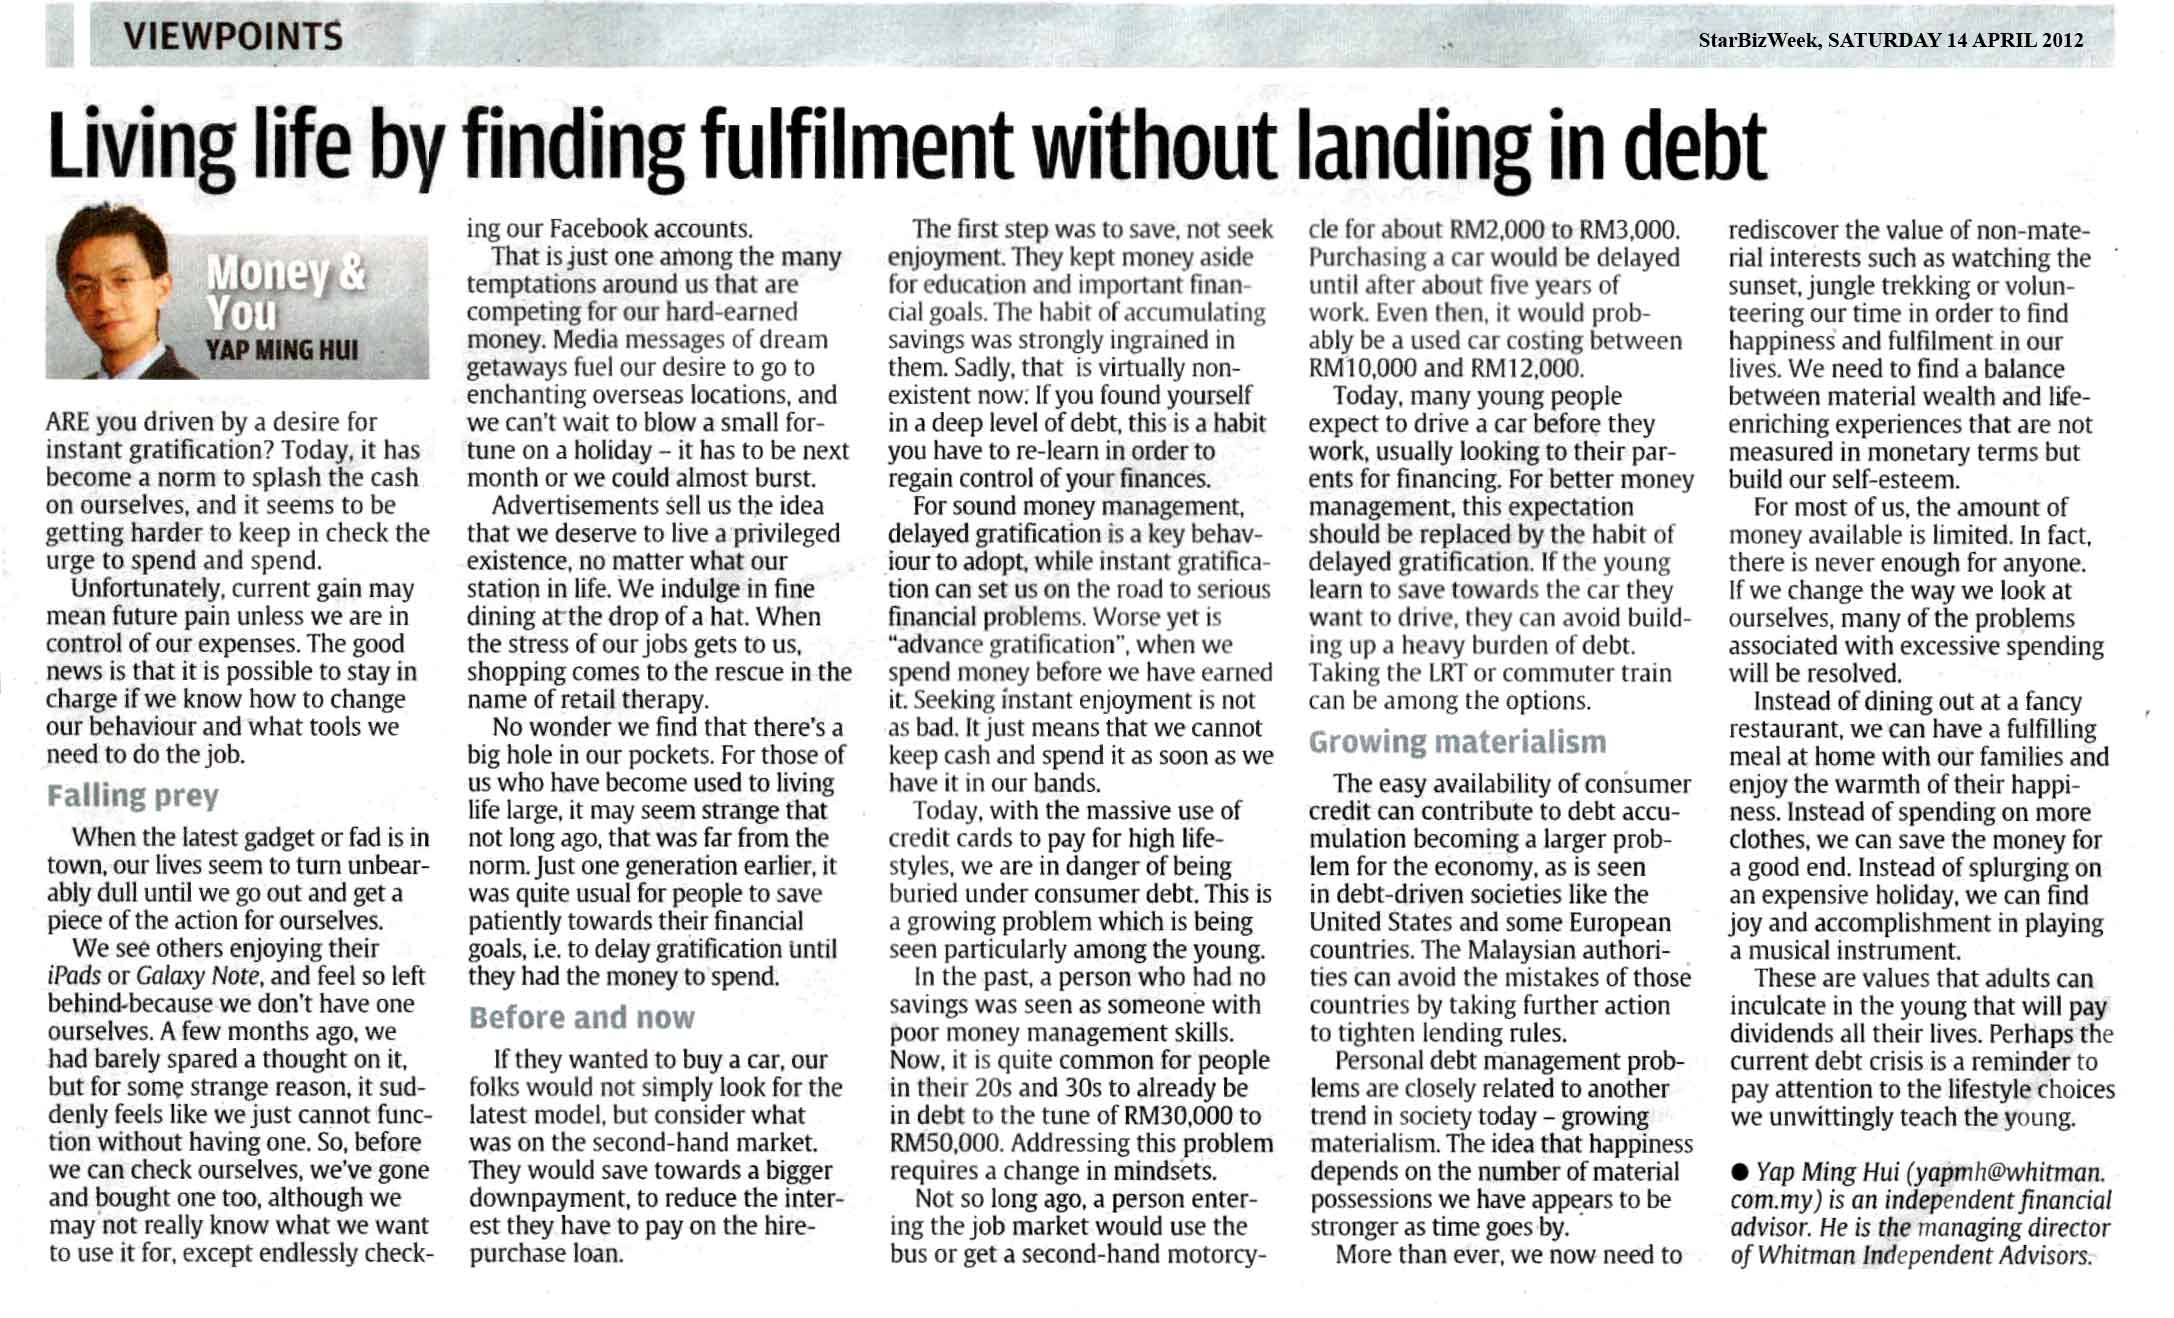 Living life by finding fulfilment without landing in debt - 14 Apr 2012